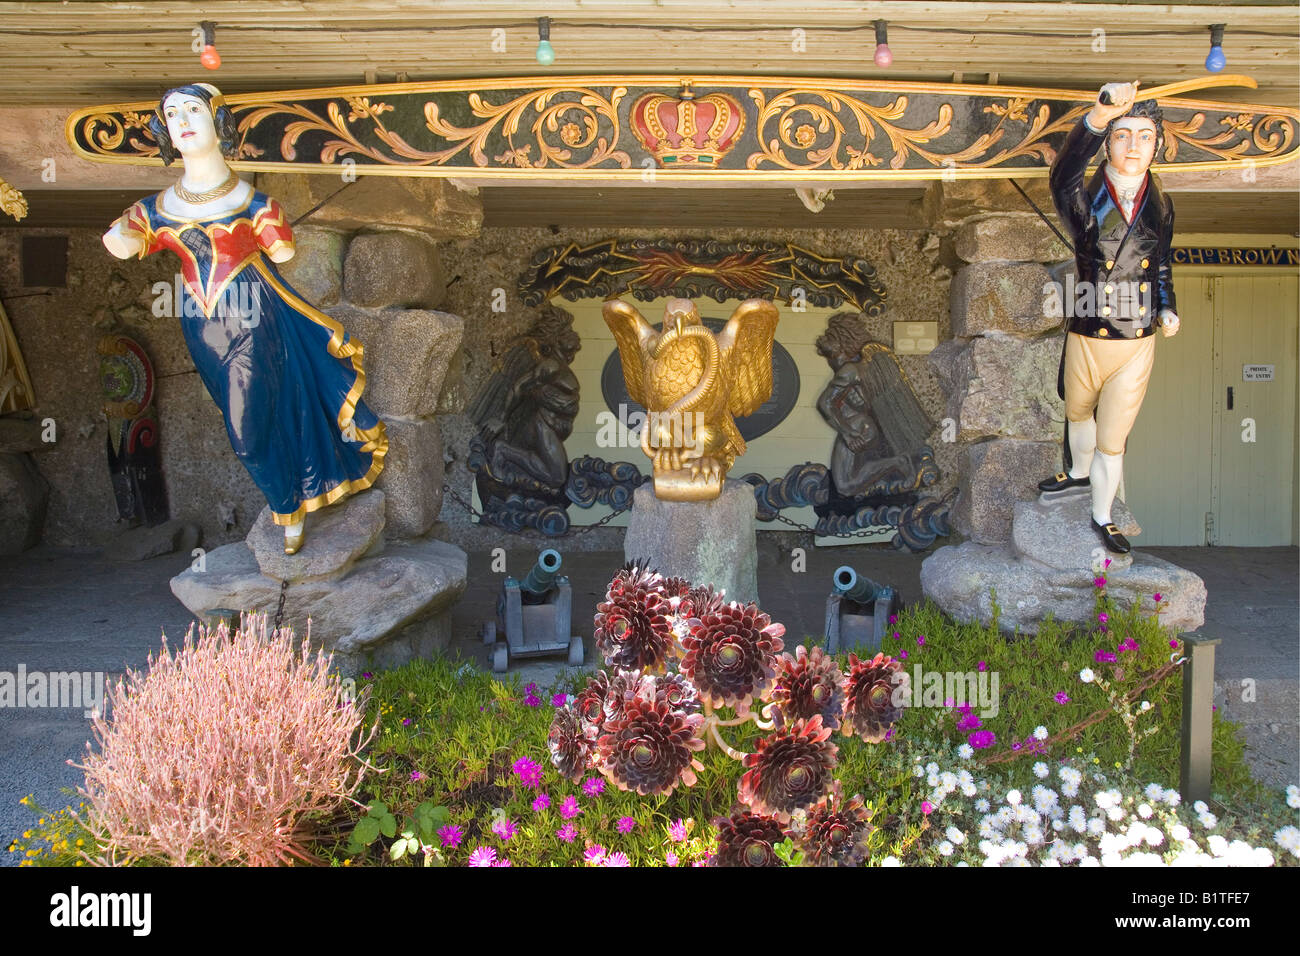 Figureheads from sailing vessels Valhalla Museum Abbey Gardens Tresco island Isles of Scilly Cornwall England GB - Stock Image